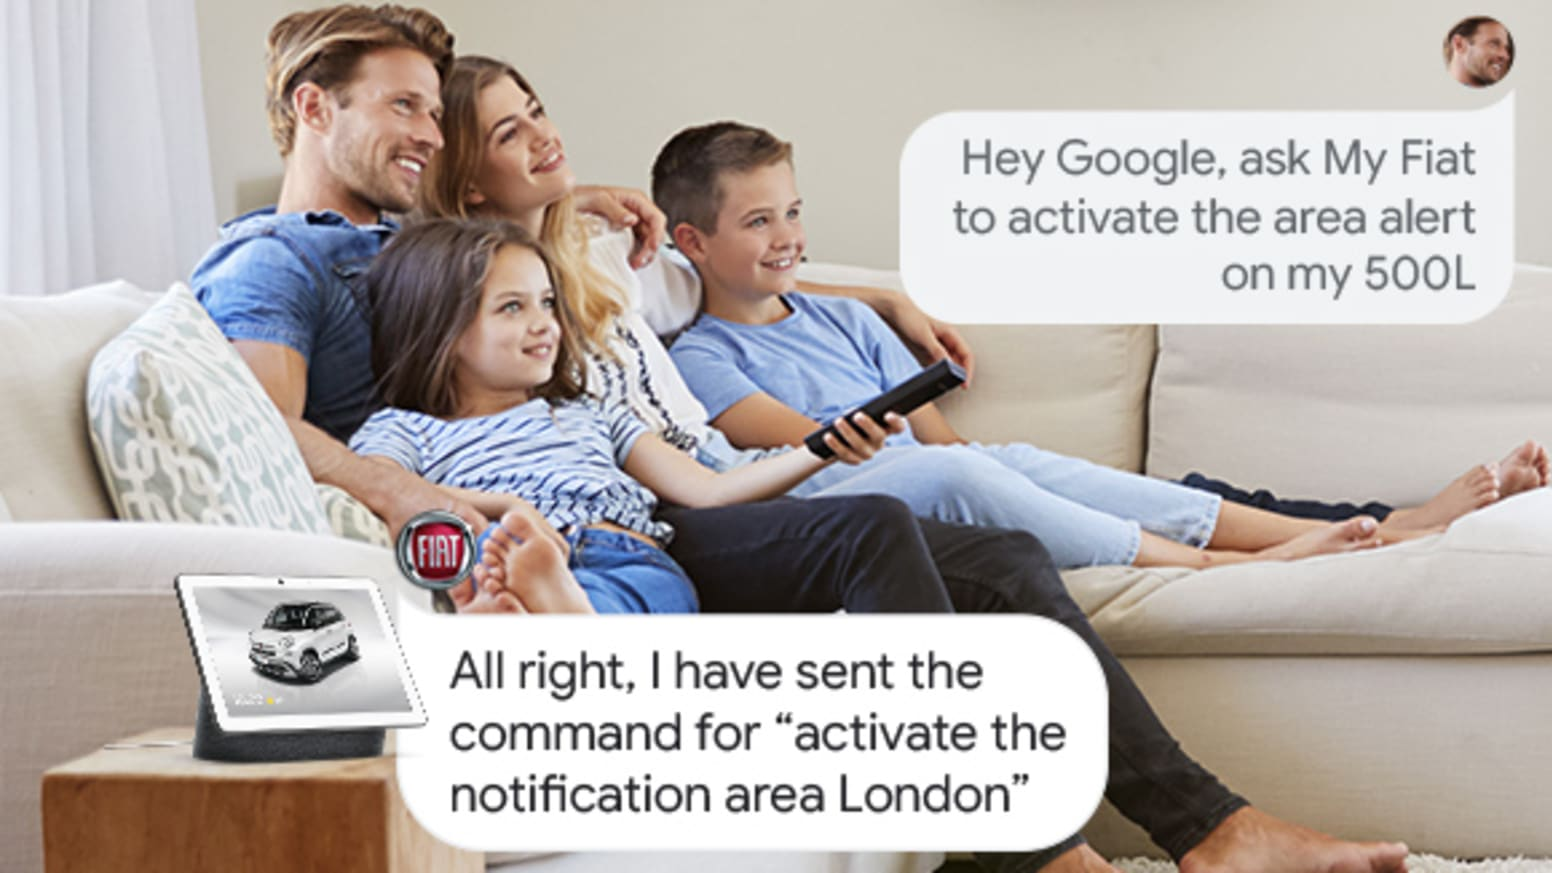 The power of voice commands